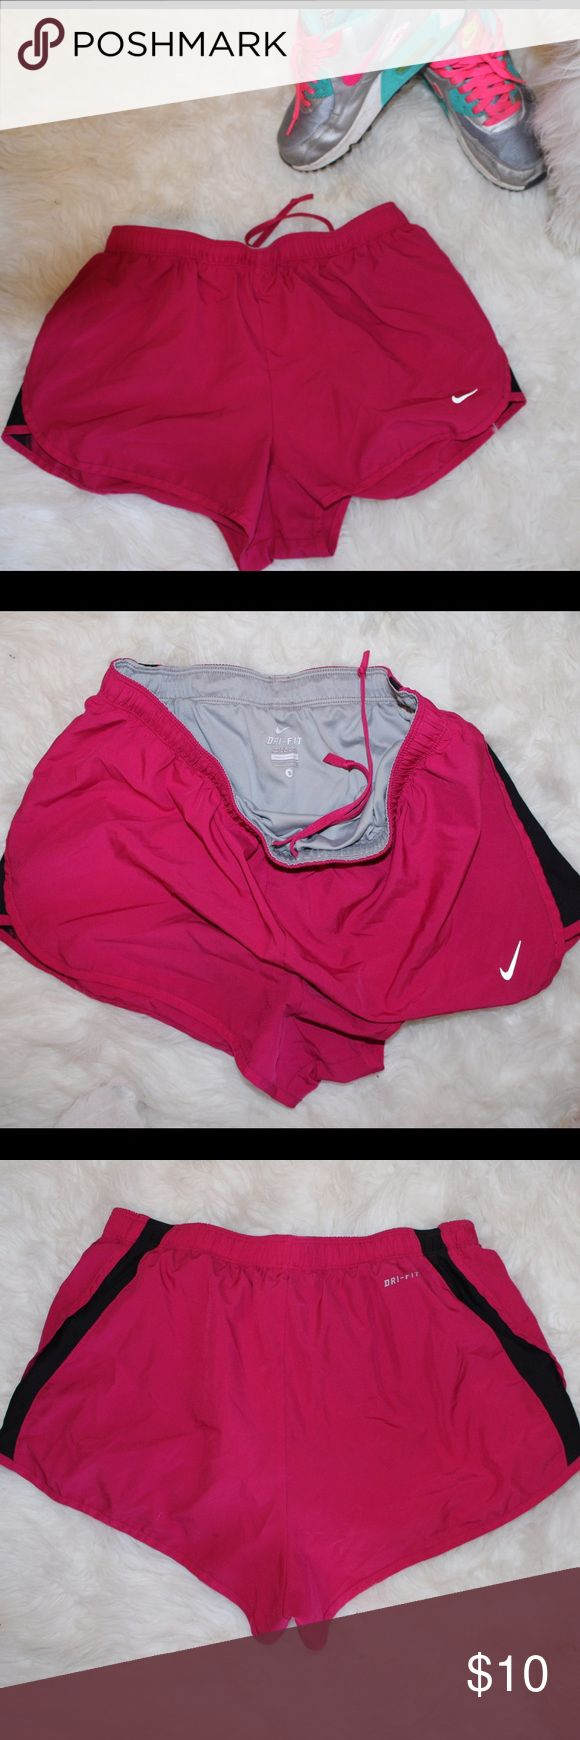 Nike Women's Pink Shorts Drunk-Fit pink and black nike shorts w underwear lining. small. doesn't look like tempo shorts on, not sure of the style. make an offer! Nike Shorts